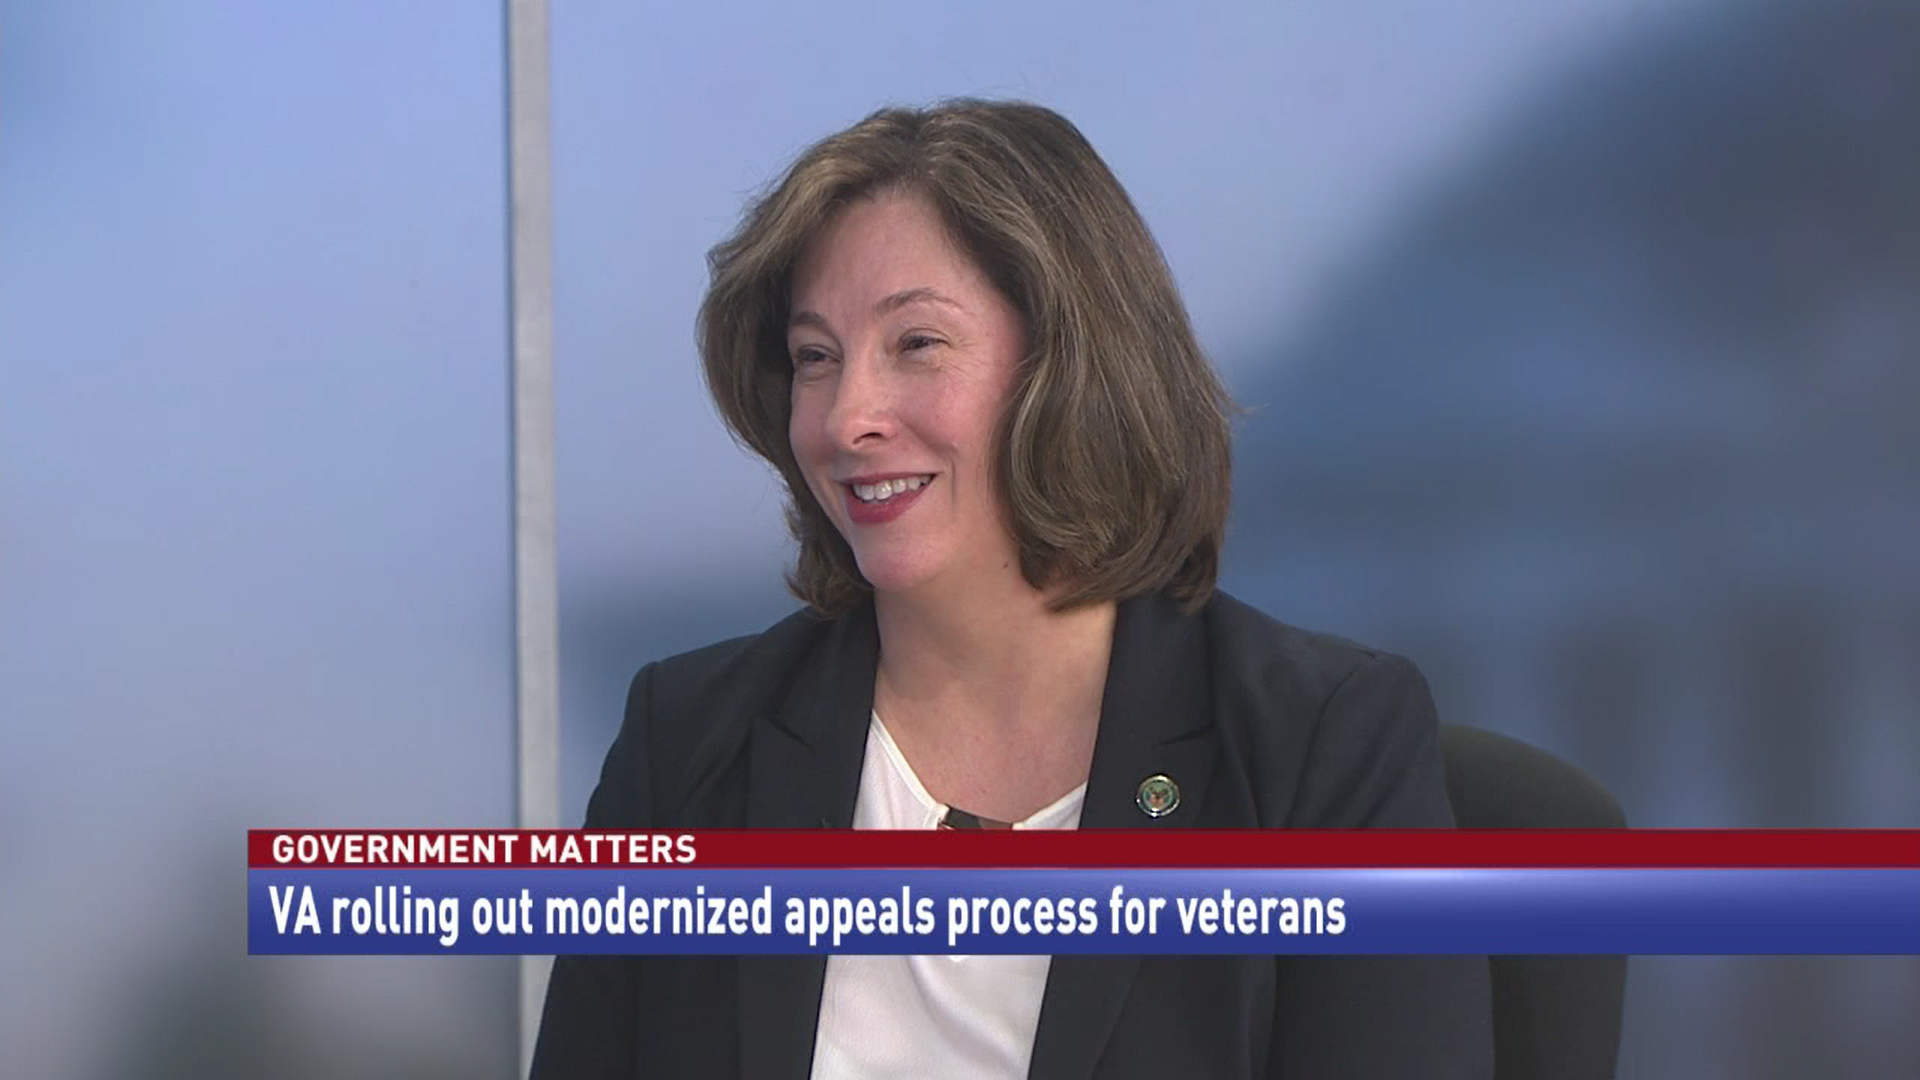 VA rolling out modernized appeals process for veterans